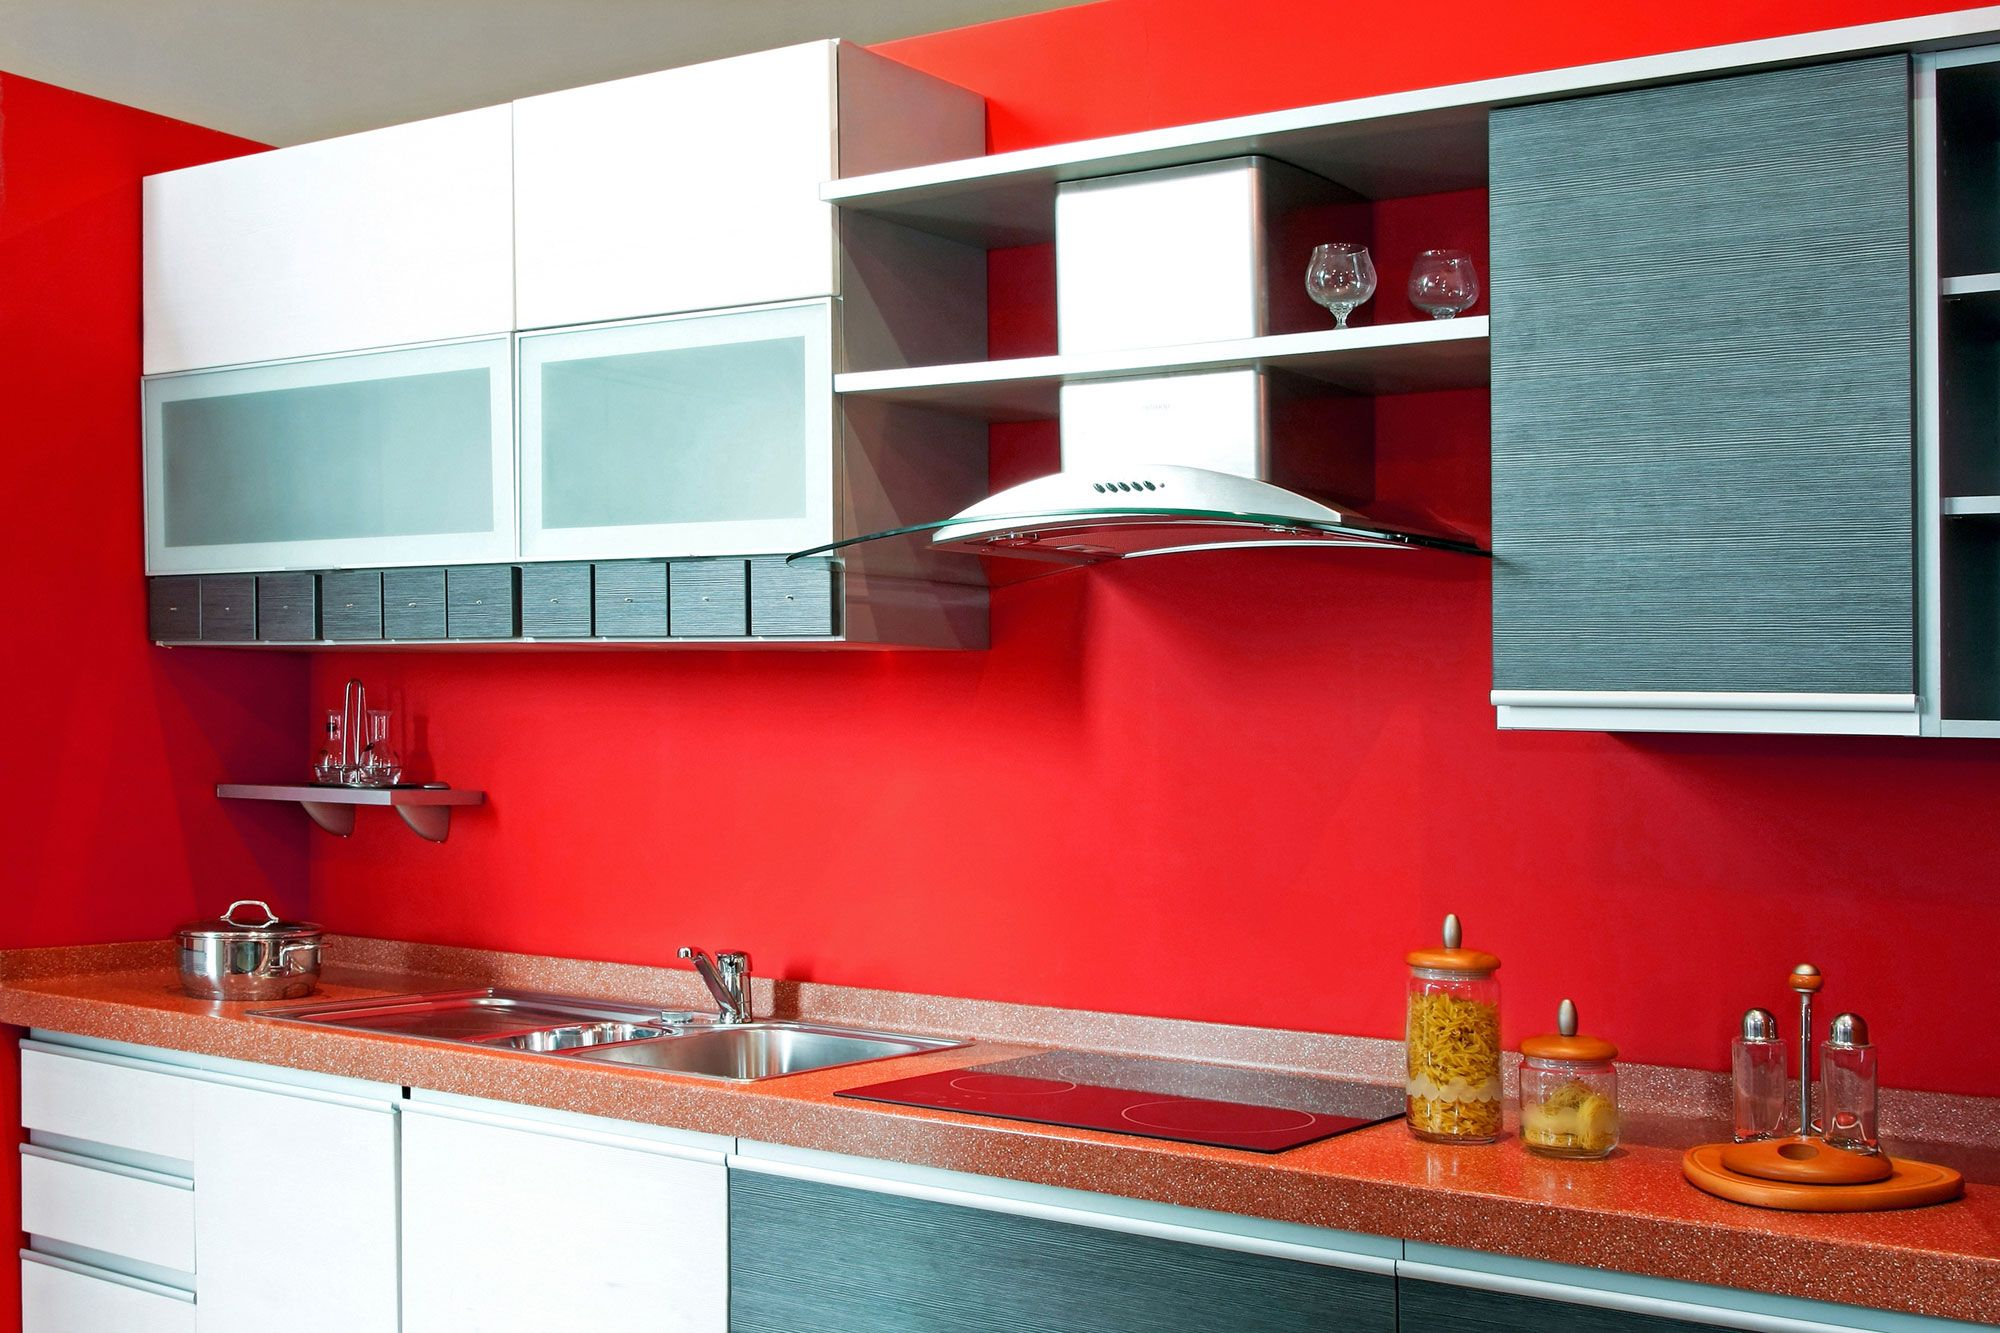 Decoración de cocinas en color rojo - Hogarmania